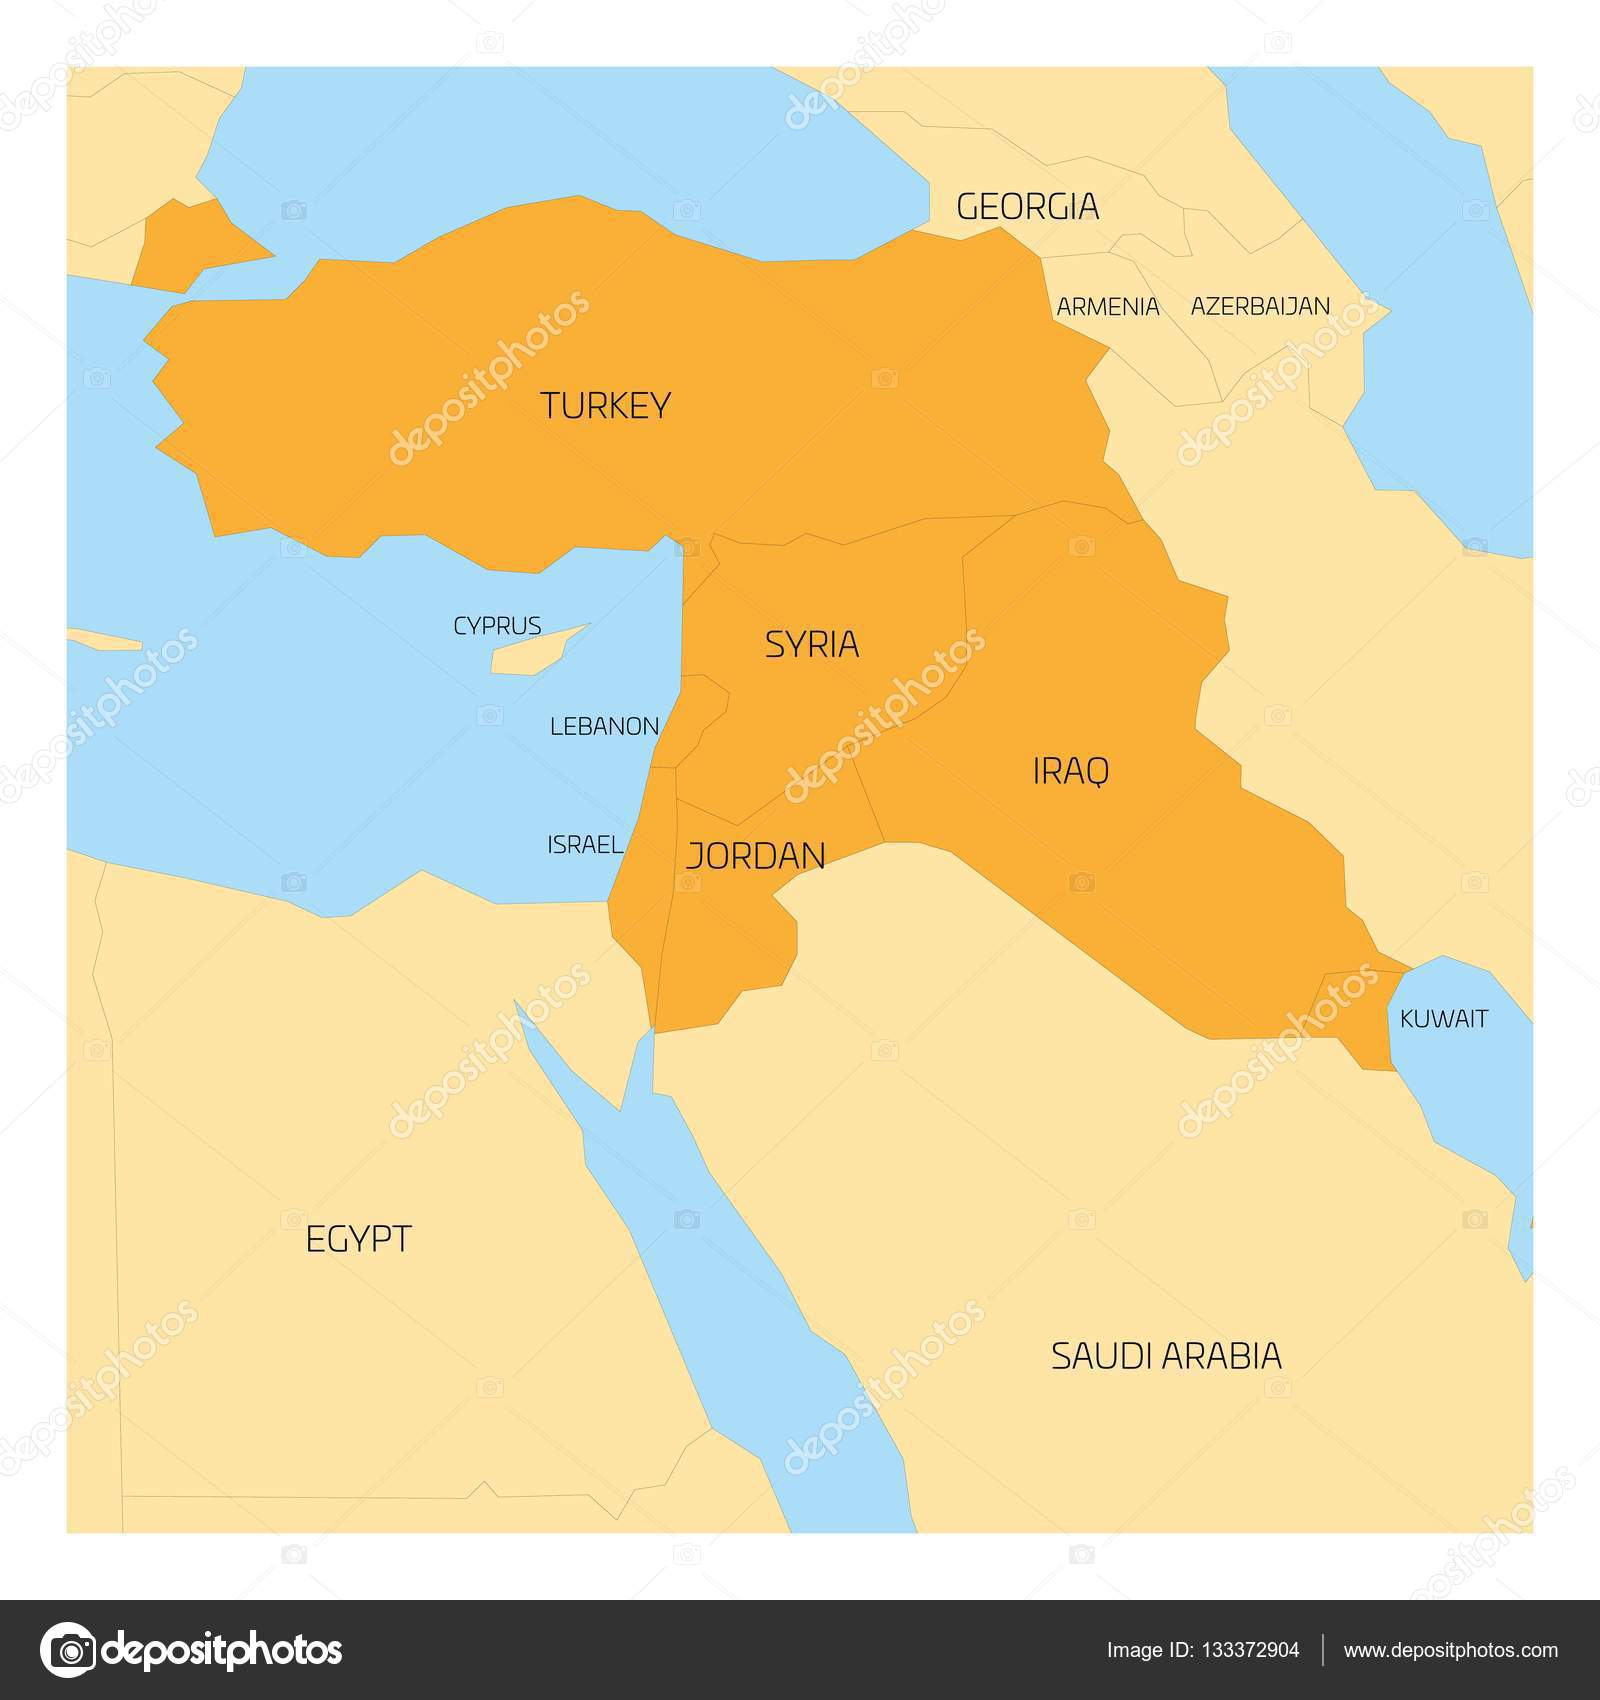 Map of middle east region stock vector pyty 133372904 map of middle east or near east transcontinental region with orange highlighted turkey syria iraq jordan lebanon and israel flat map with yellow land gumiabroncs Image collections